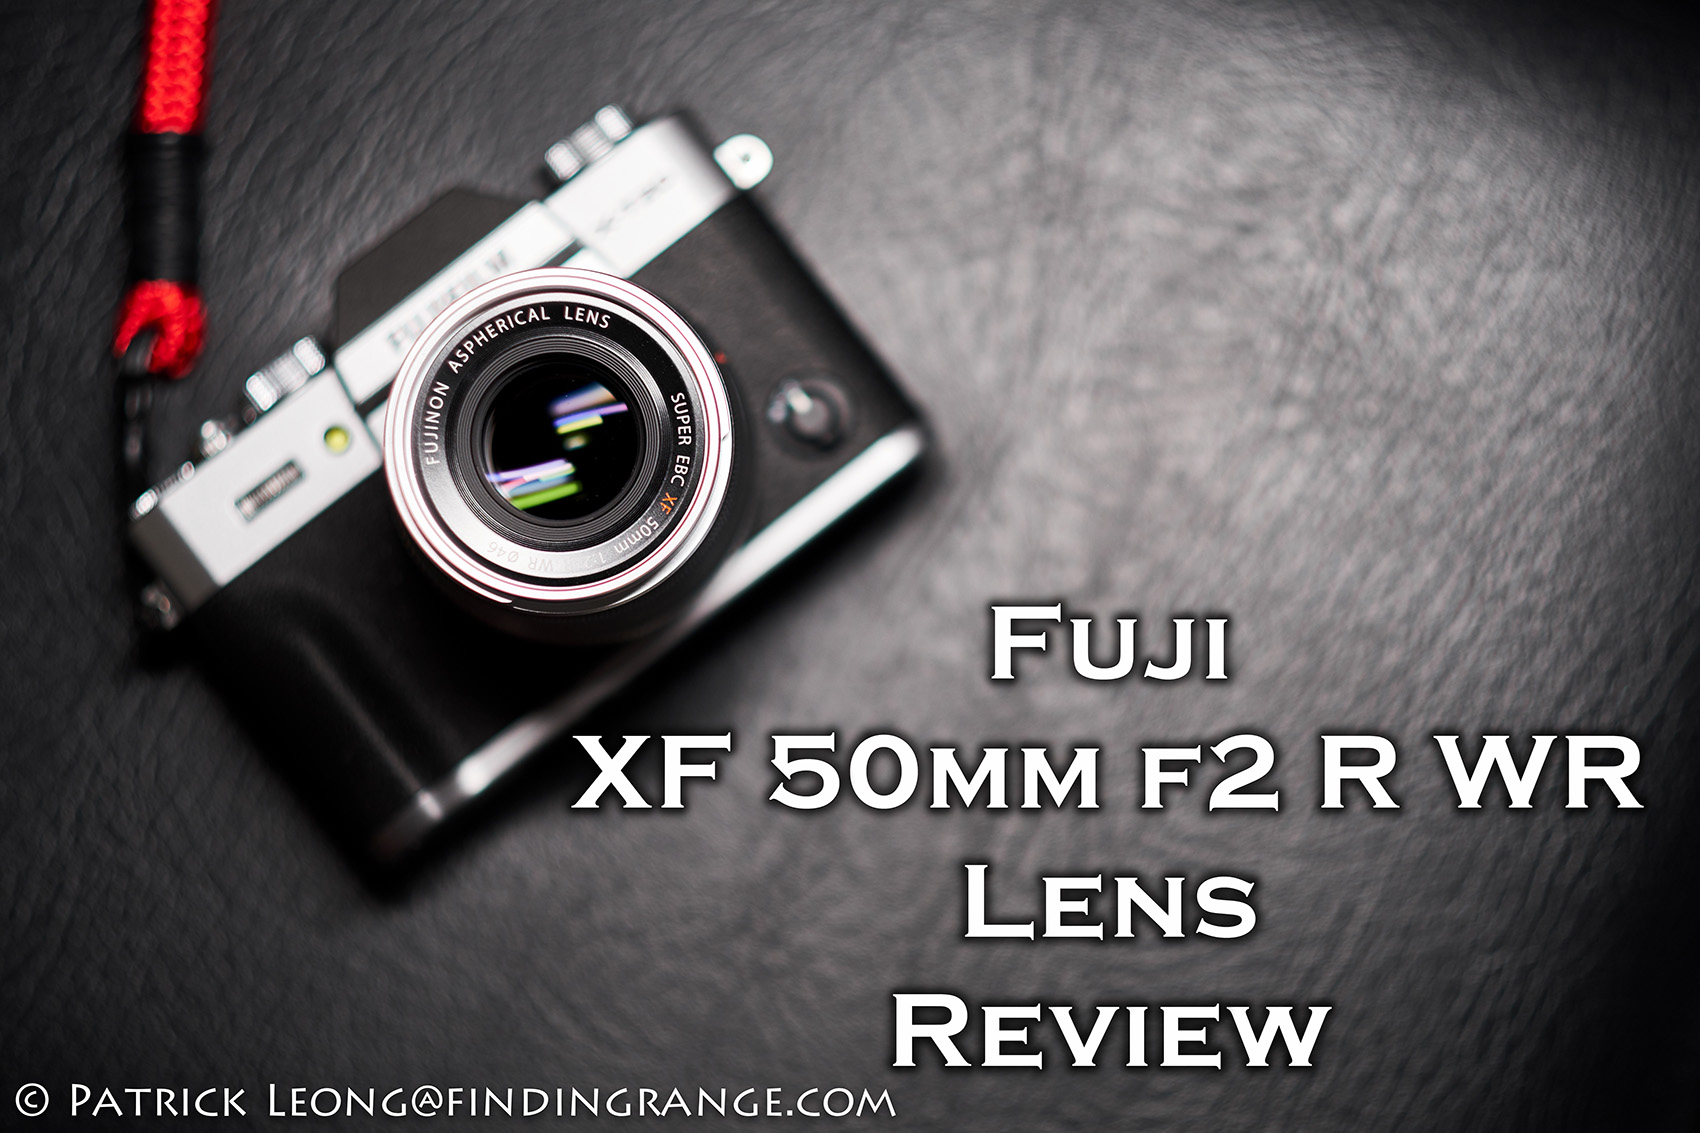 Fuji-X-T20-XF-50mm-f2-R-WR-lens-Review-4